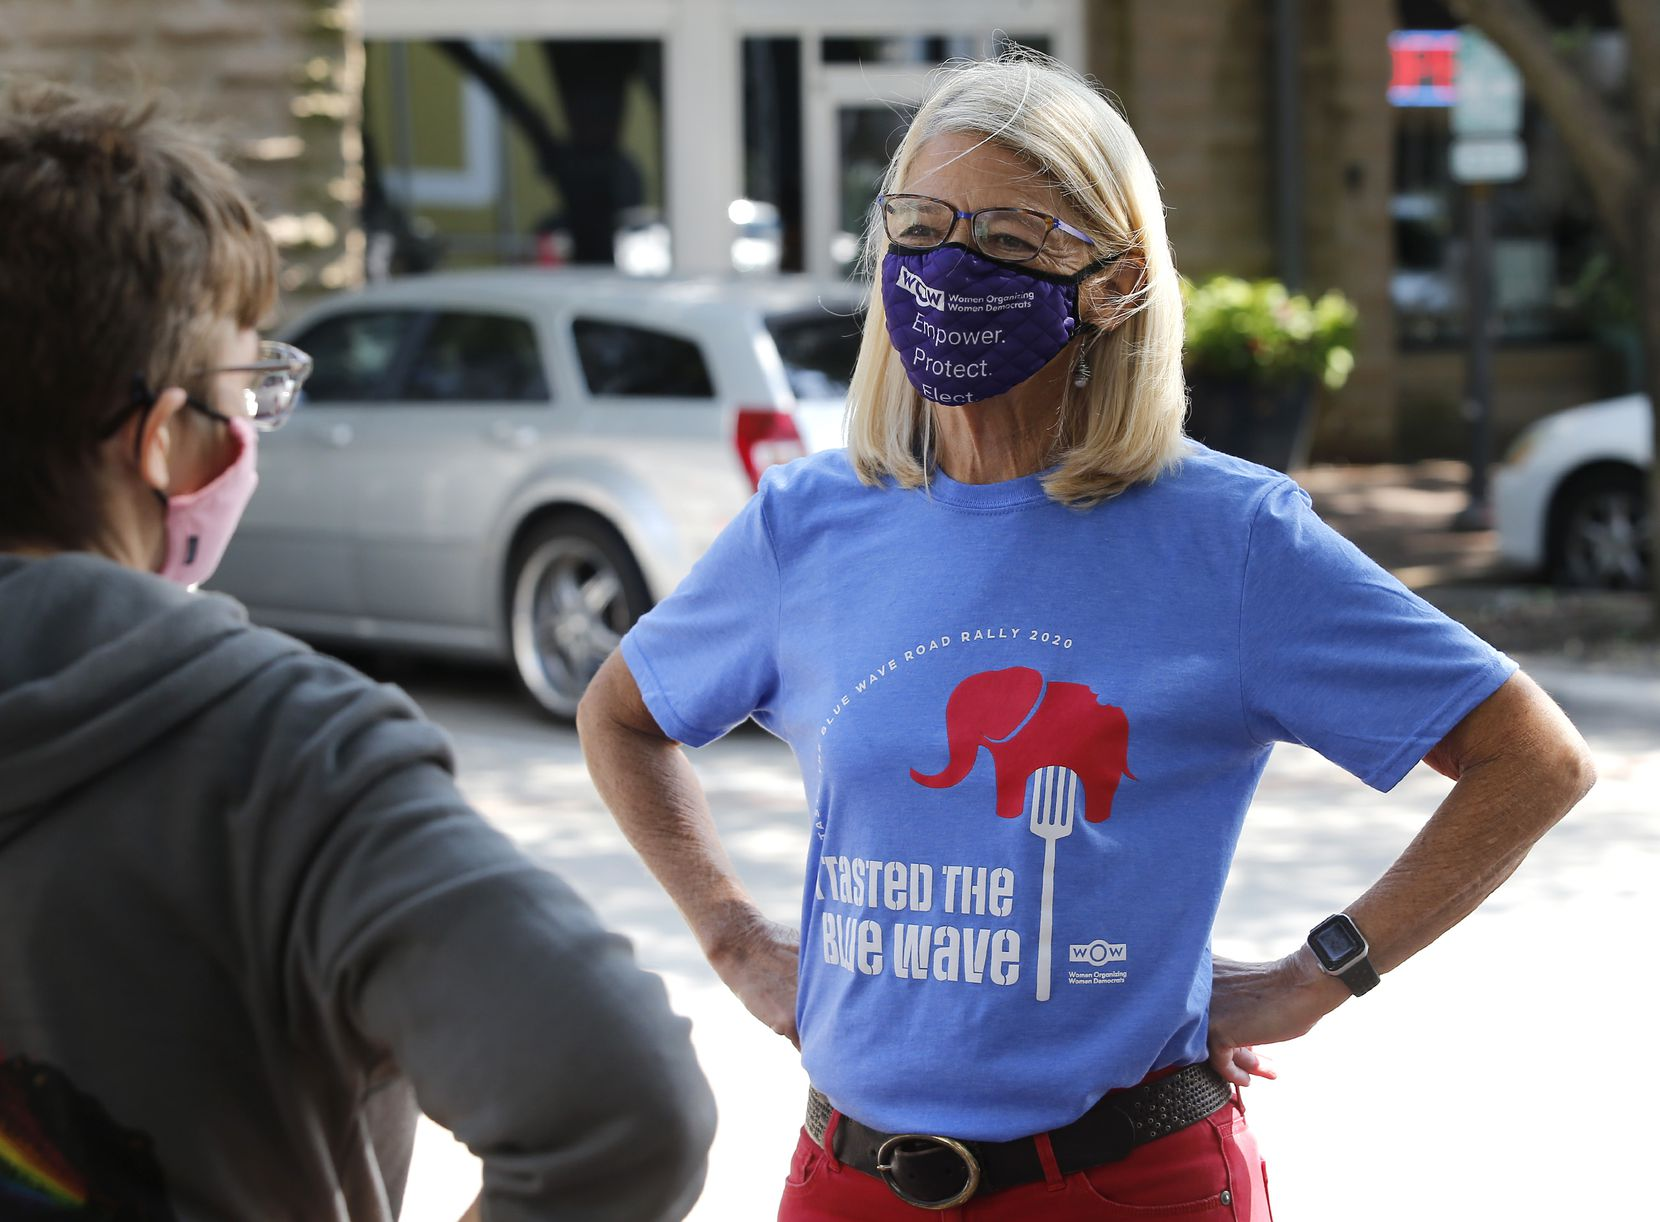 Sharon Hirsch, a Democratic candidate for the Texas House, talks with a volunteer during a drive-up rally at the Shops at Legacy in Plano.